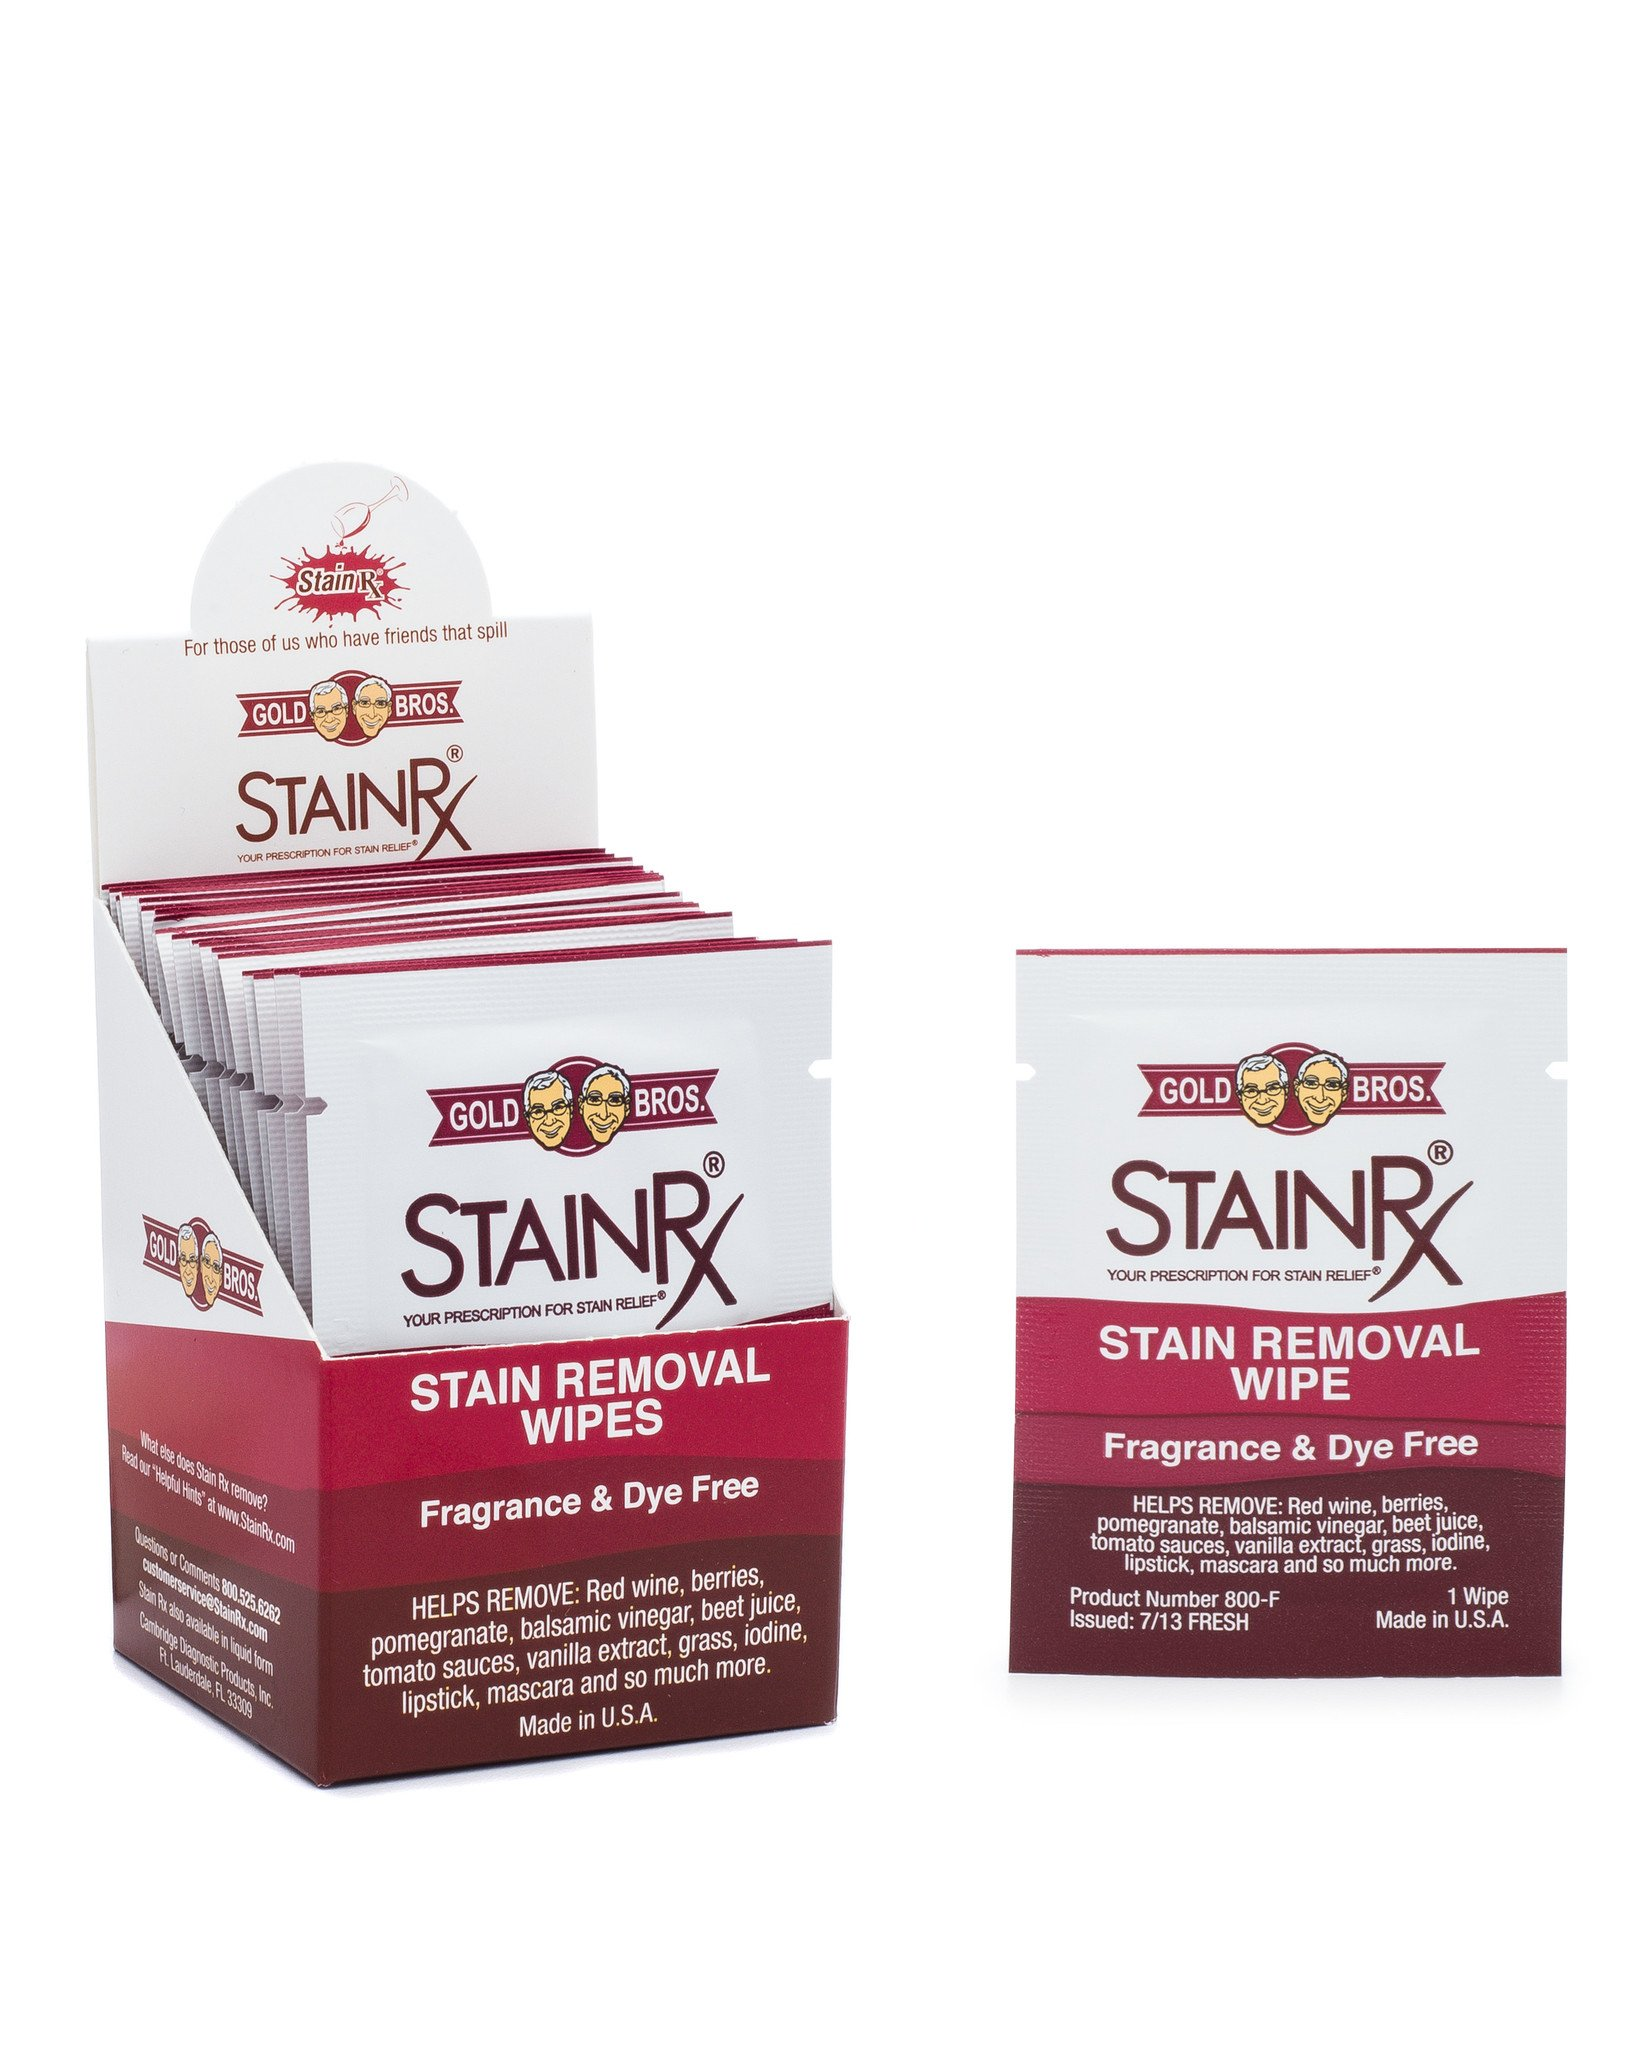 Stain Rx Wipes - Portable Stain Eliminator & Spot Remover Wipes, Individually Packaged Towelettes